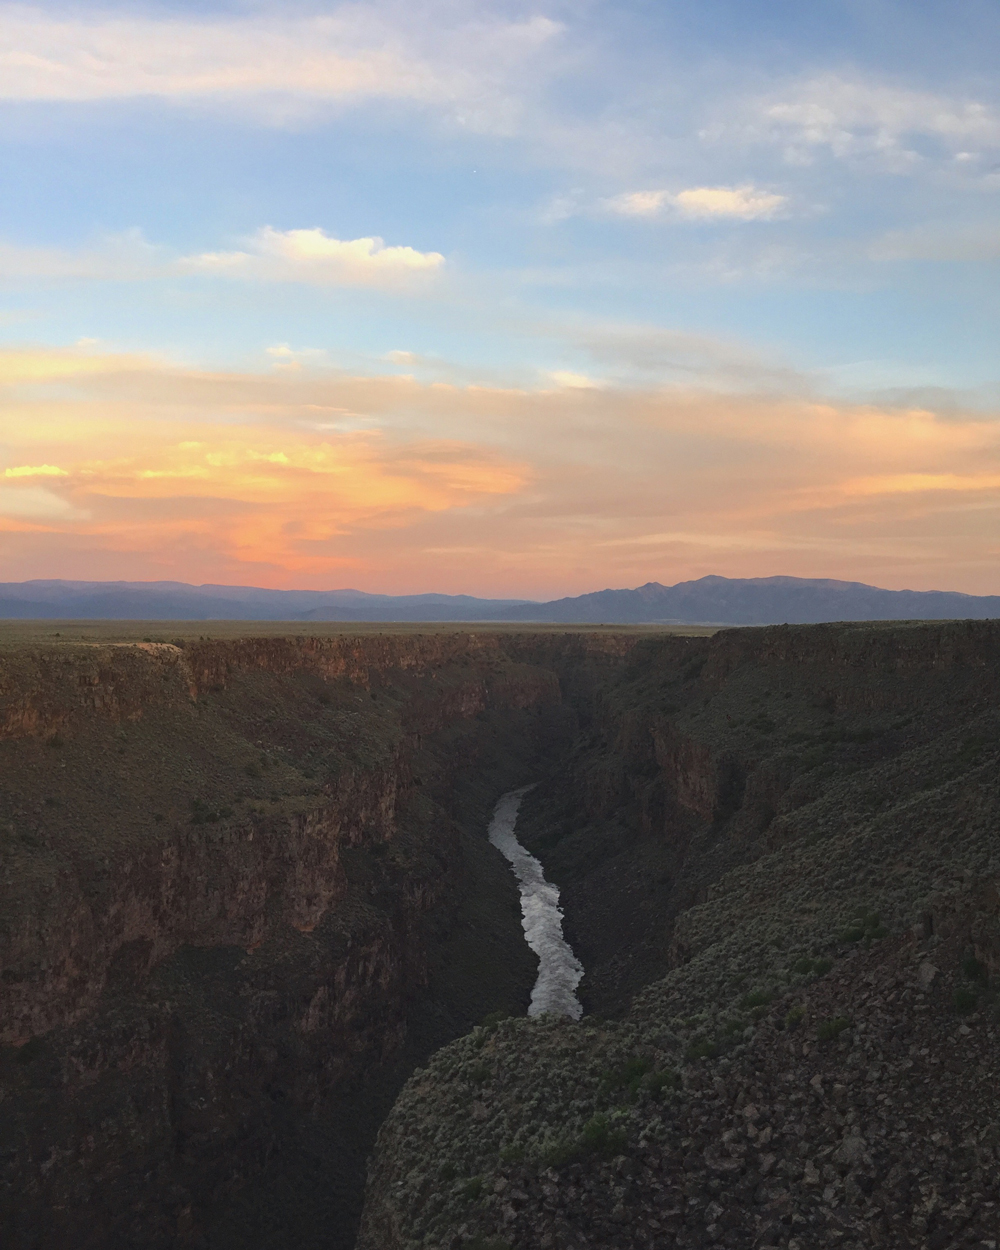 The Rio Grande Gorge, water through rock